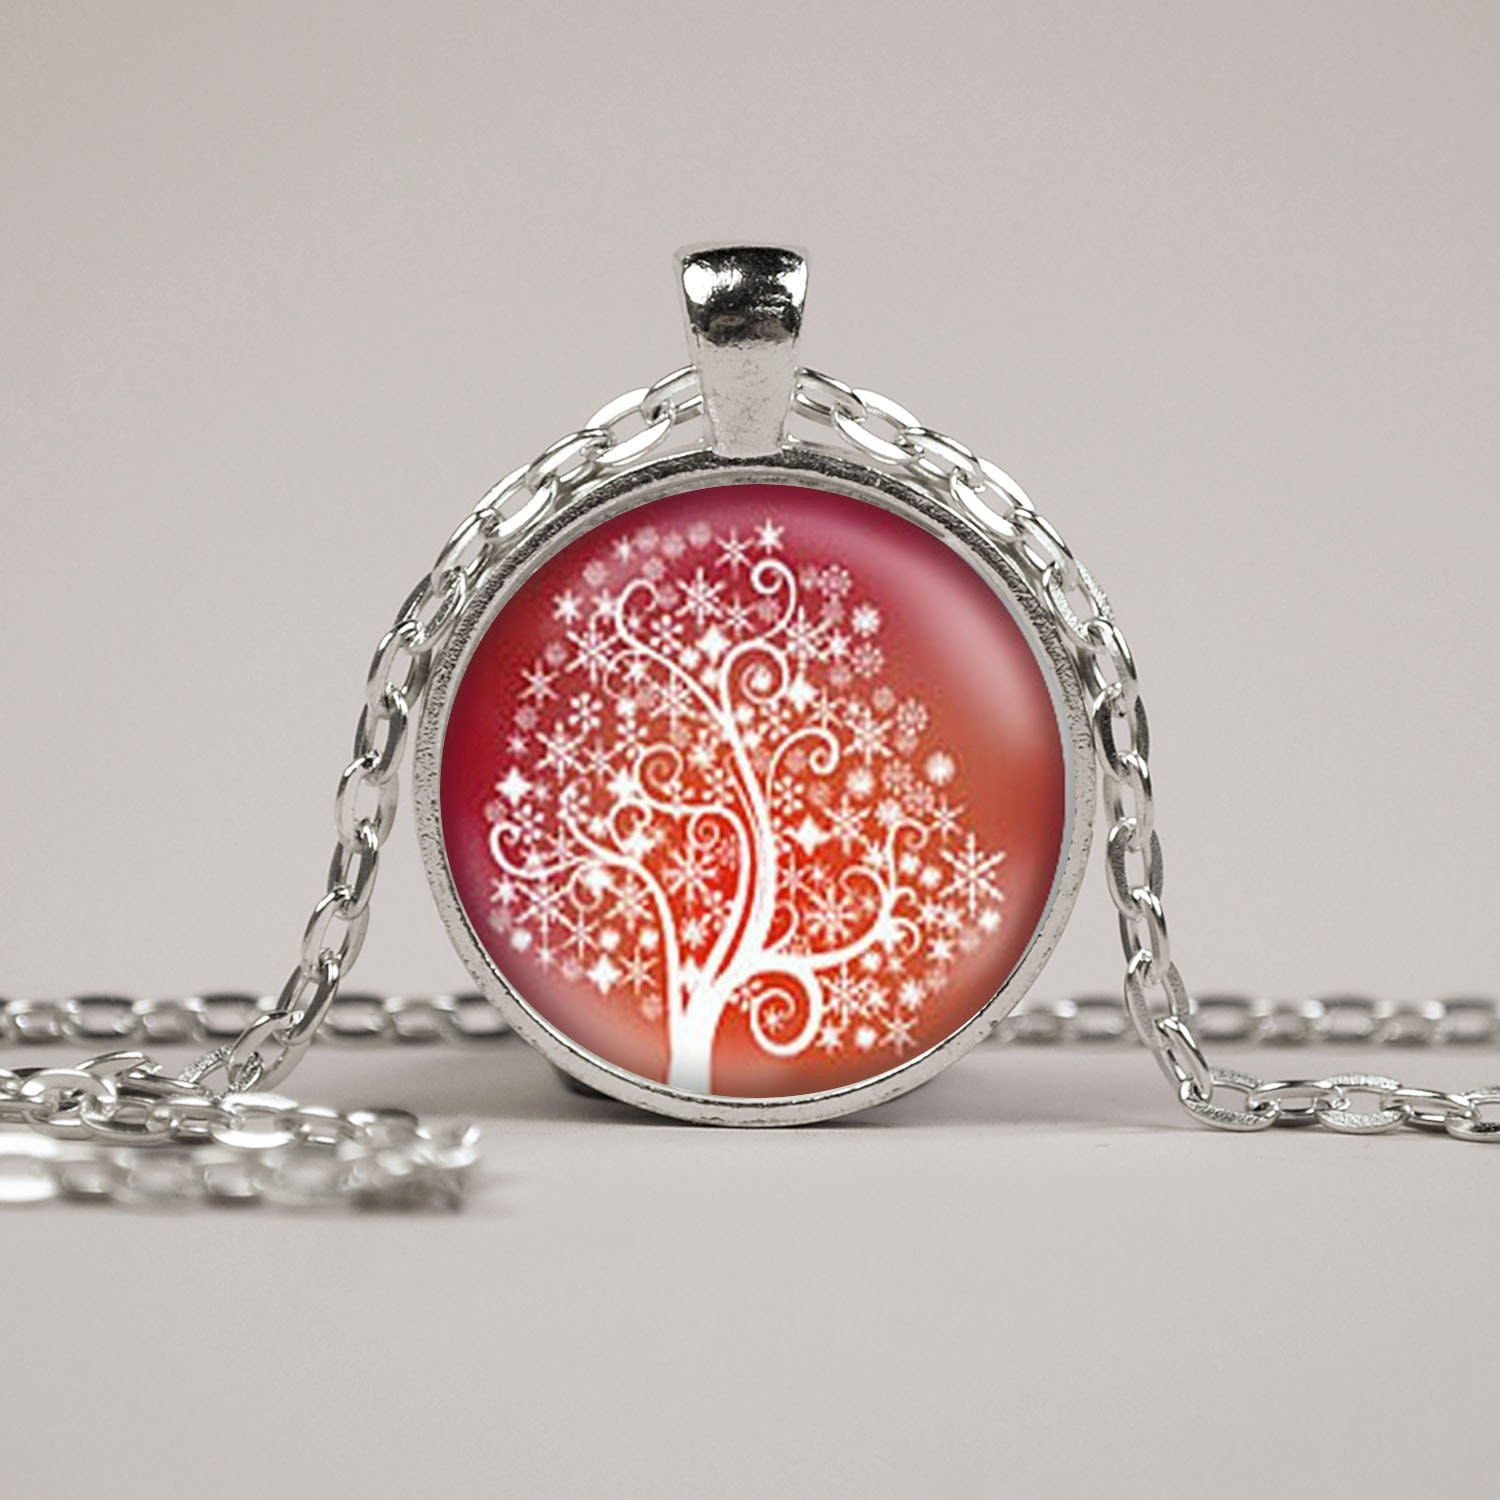 Red and White Snowflake Tree Pendant Necklace or Keyring Glass Art Print Jewelry Charm Gifts for Her or Him Tree of Life Christmas